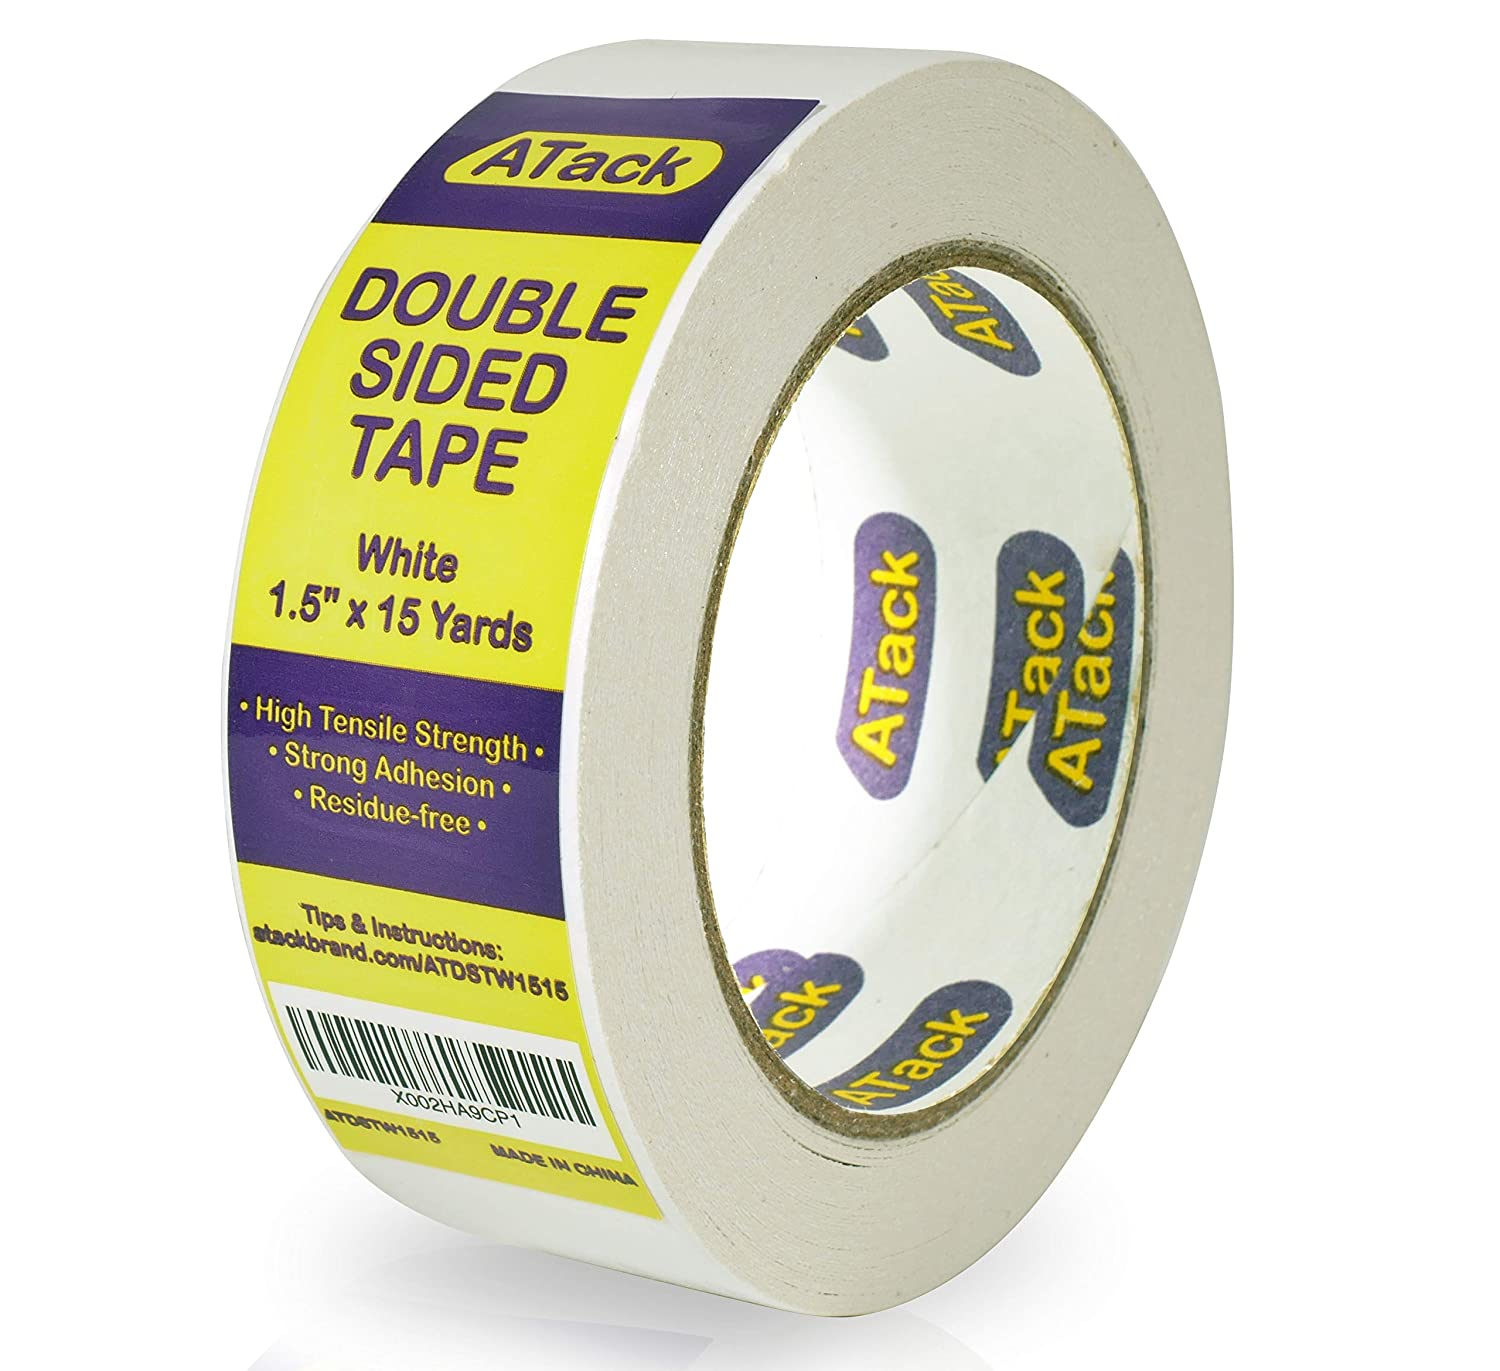 ATack Double-Sided Tape White, 1.5 Inches x 15 Yards, Heavy Duty Double Sides self Sticky Wall Fabric Tape for Wood Templates, Furniture, Leather, Curtains and Craft